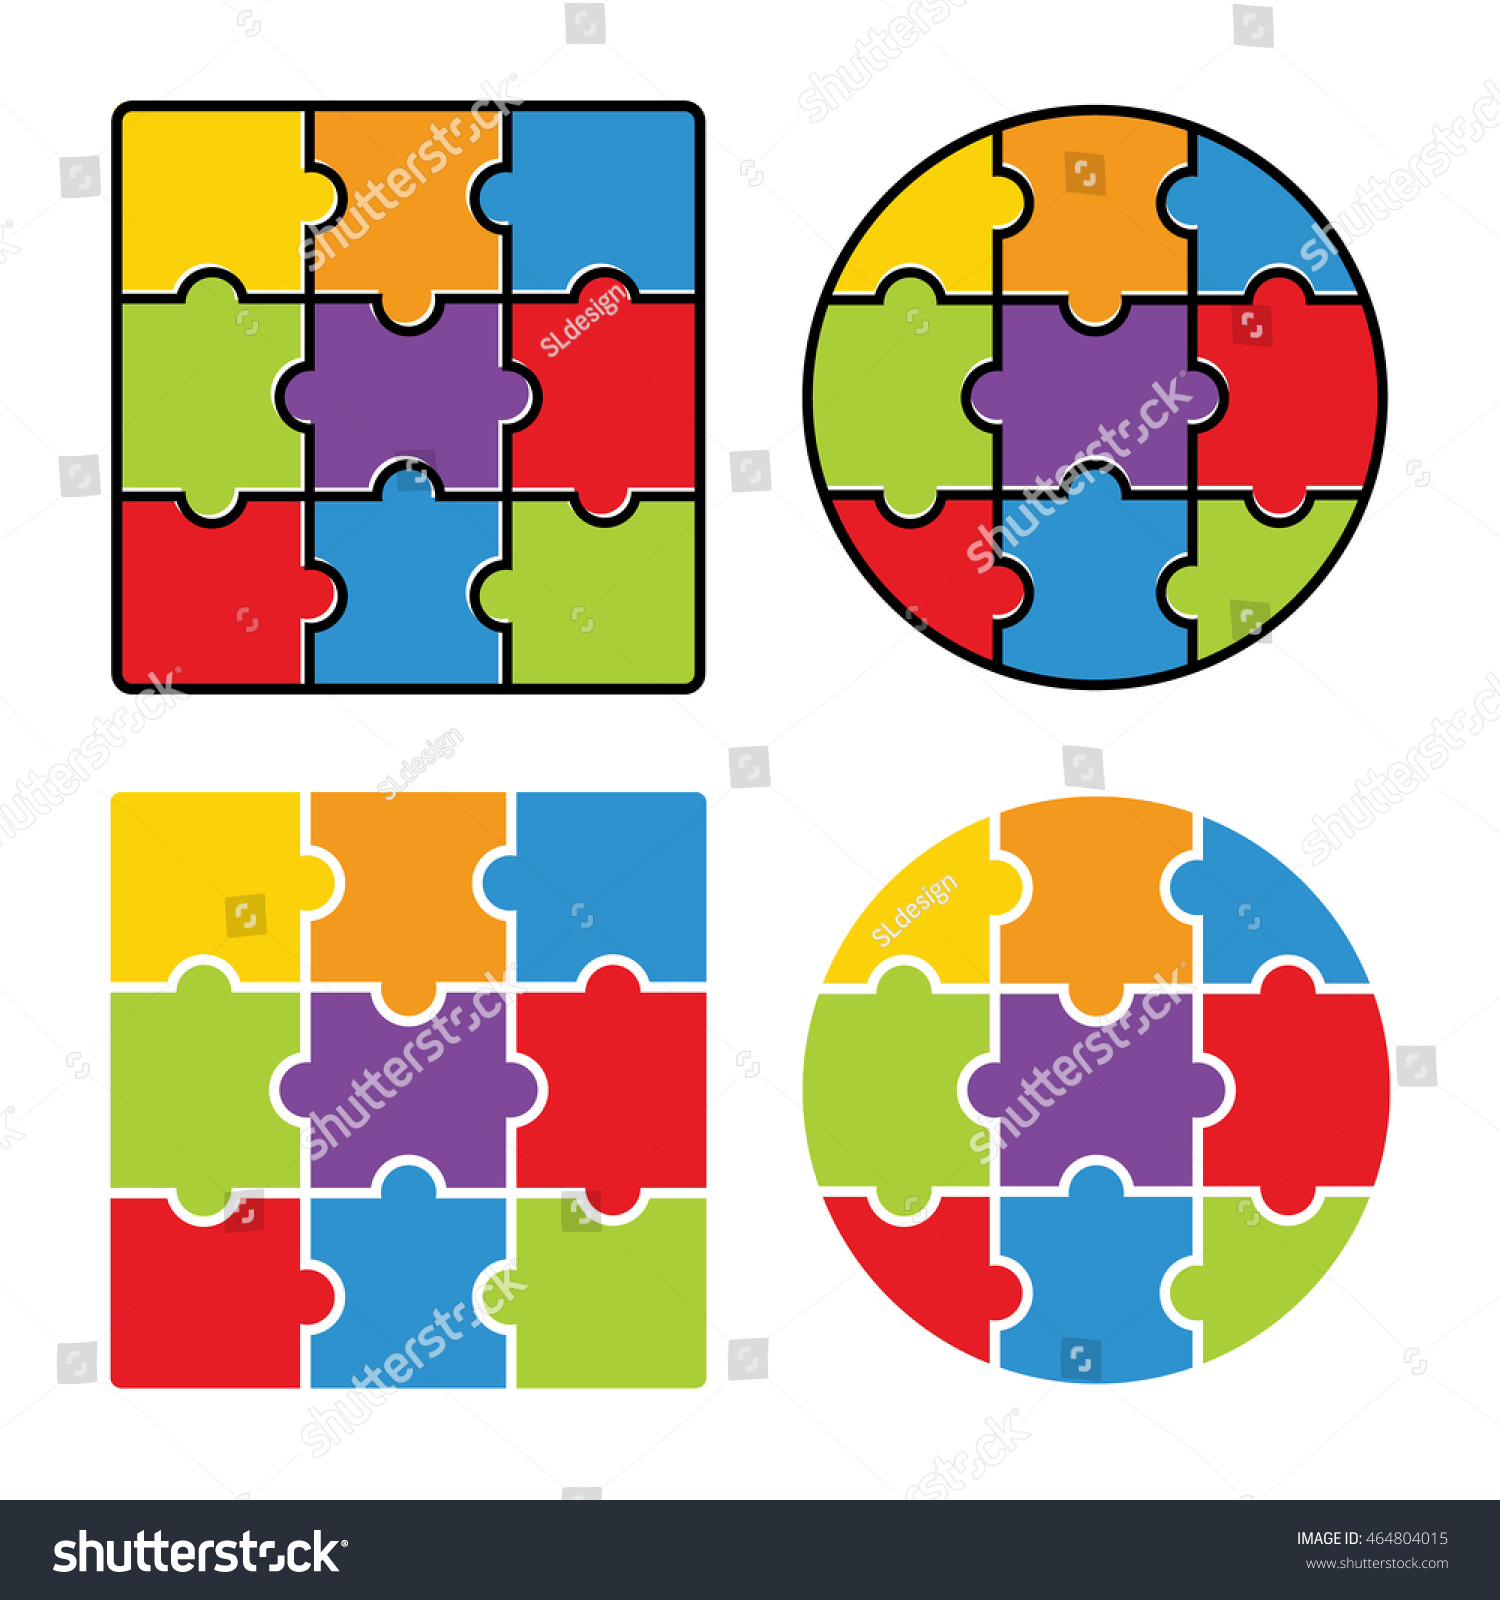 Jigsaw Puzzle Blank Simple Template 3 Stock Vector